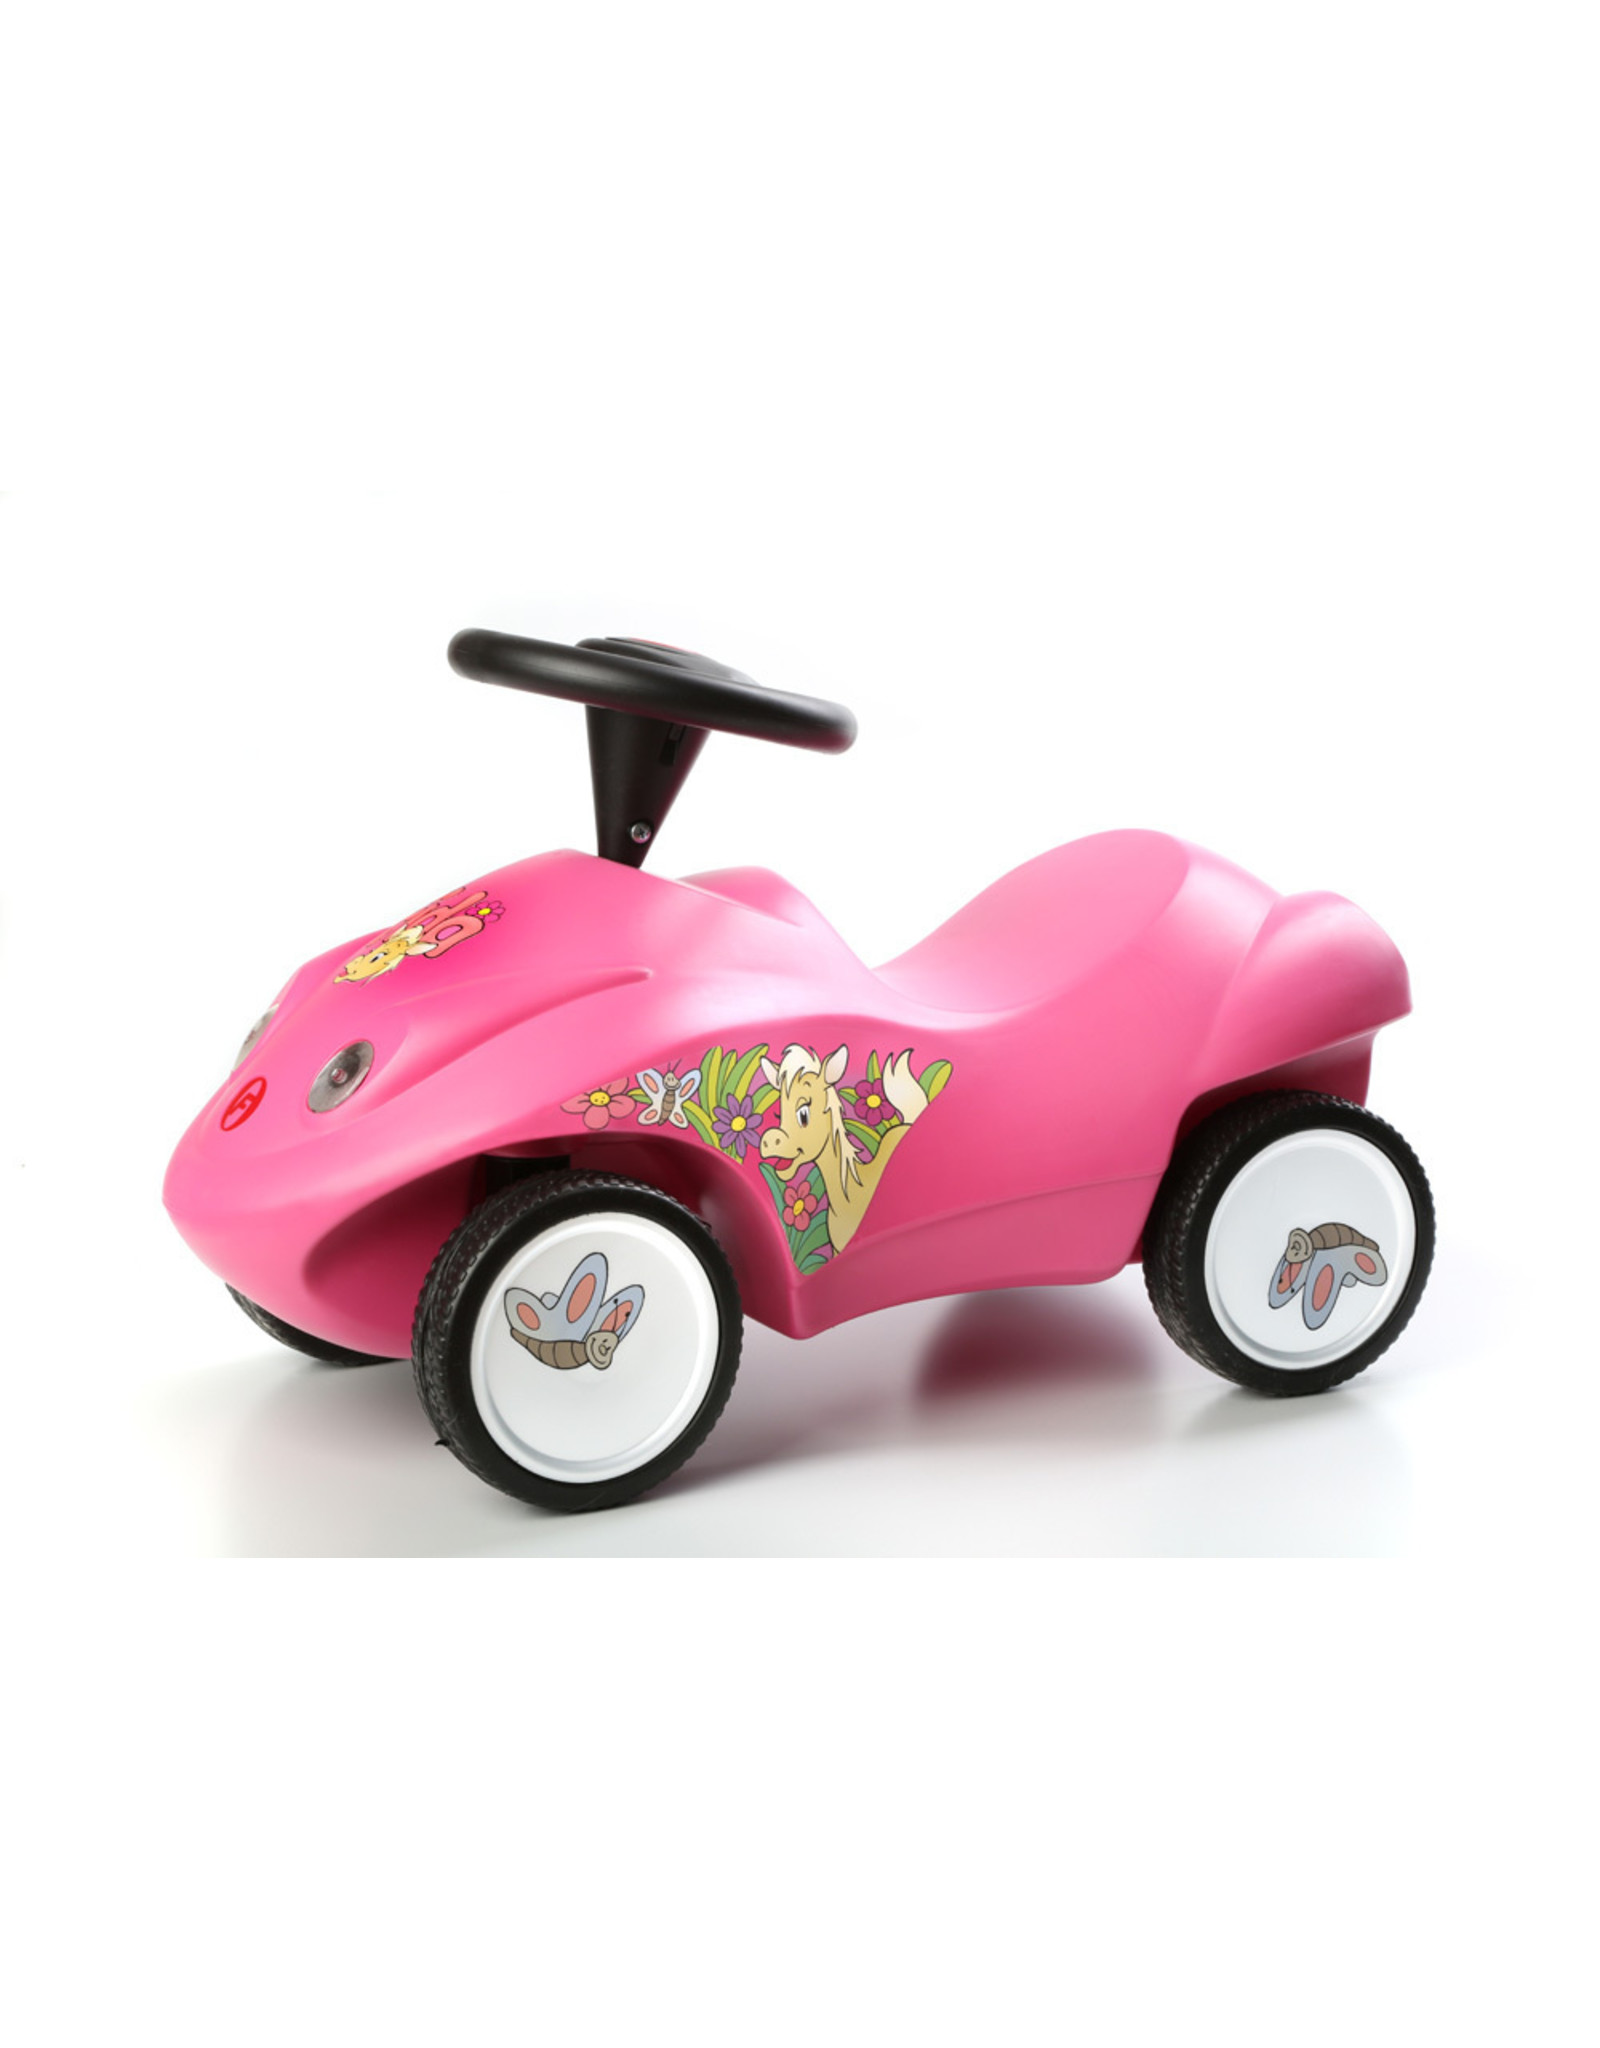 Ferbedo Ferbedo Fida ride-on - pink